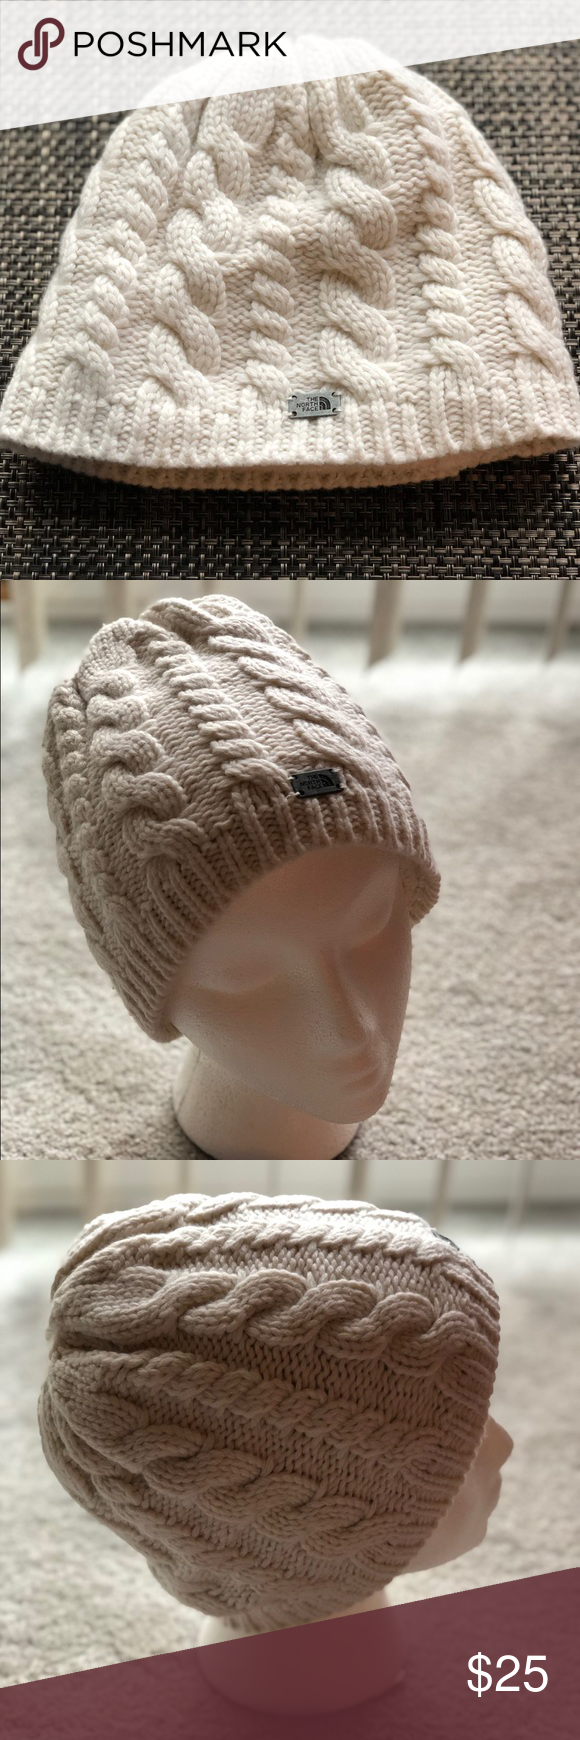 749f09518ad The North Face Women s Fuzzy Cable Beanie Fully lined with super soft flex  fleece. The North Face Other